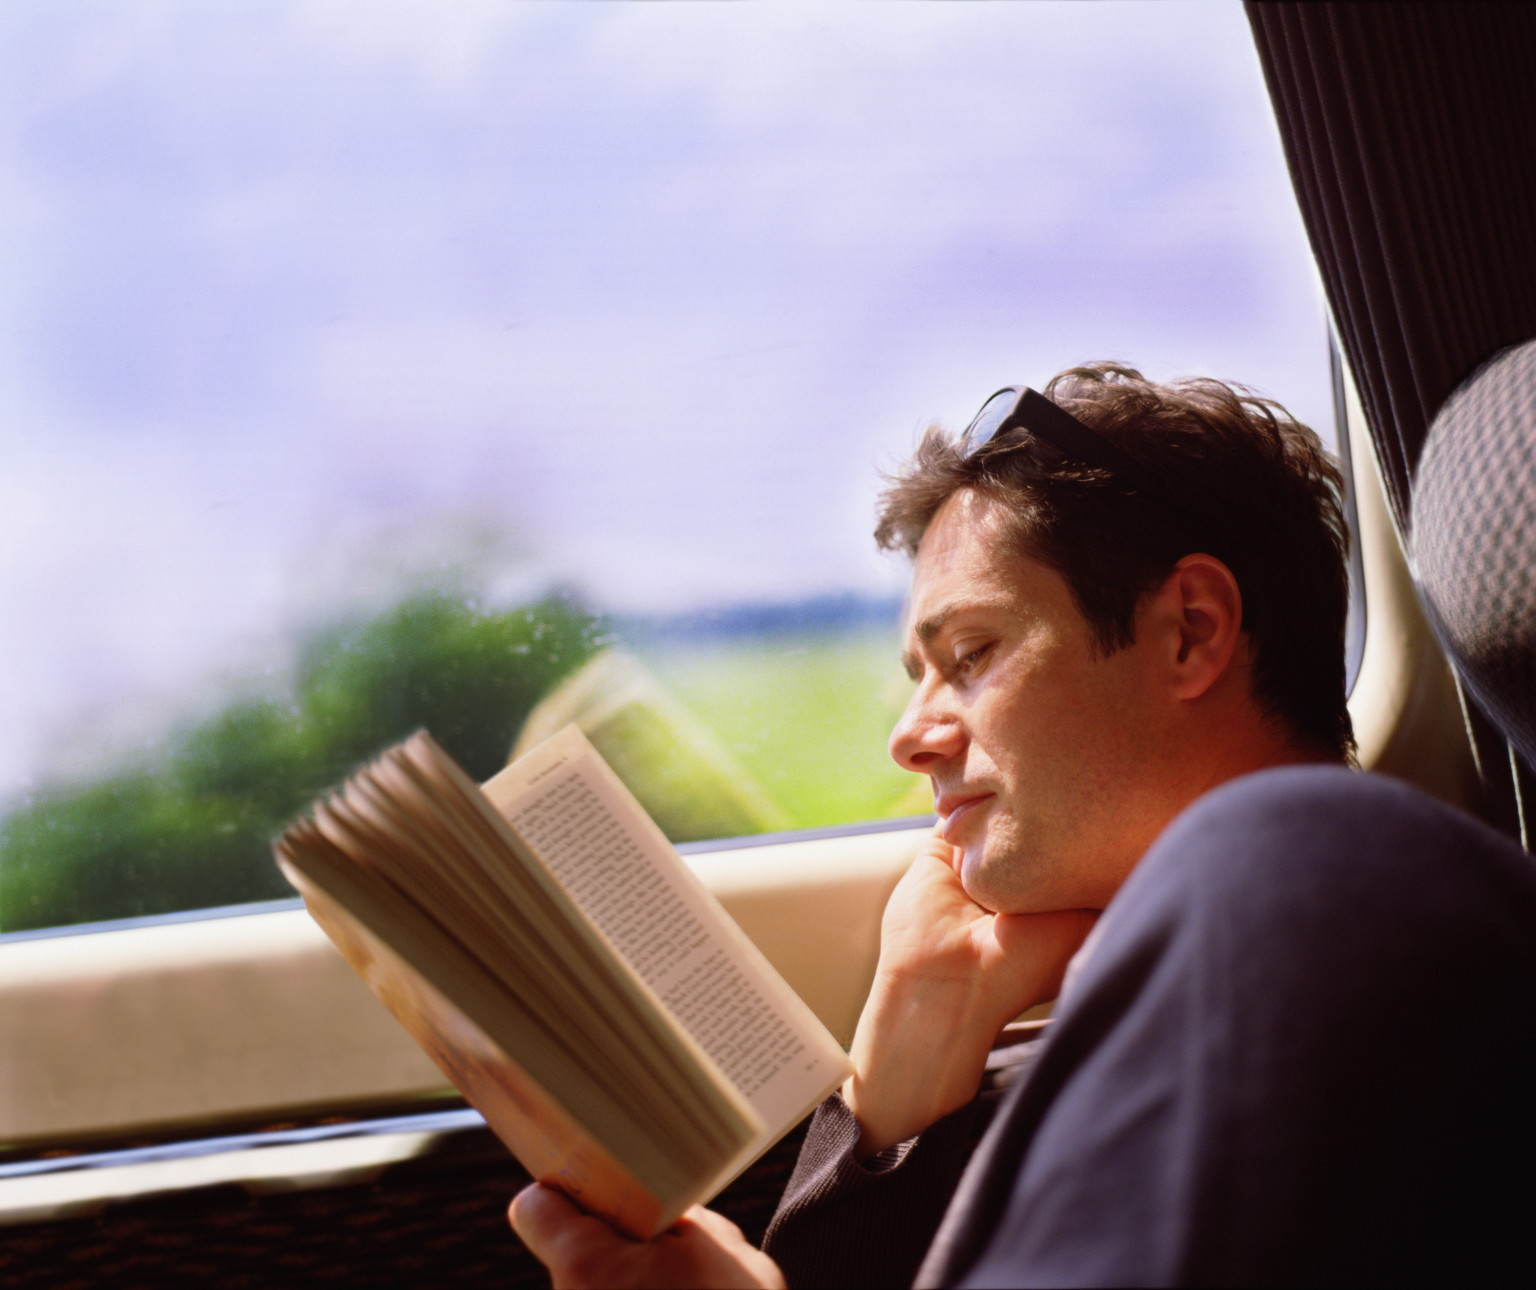 BOOK LISTS & READING